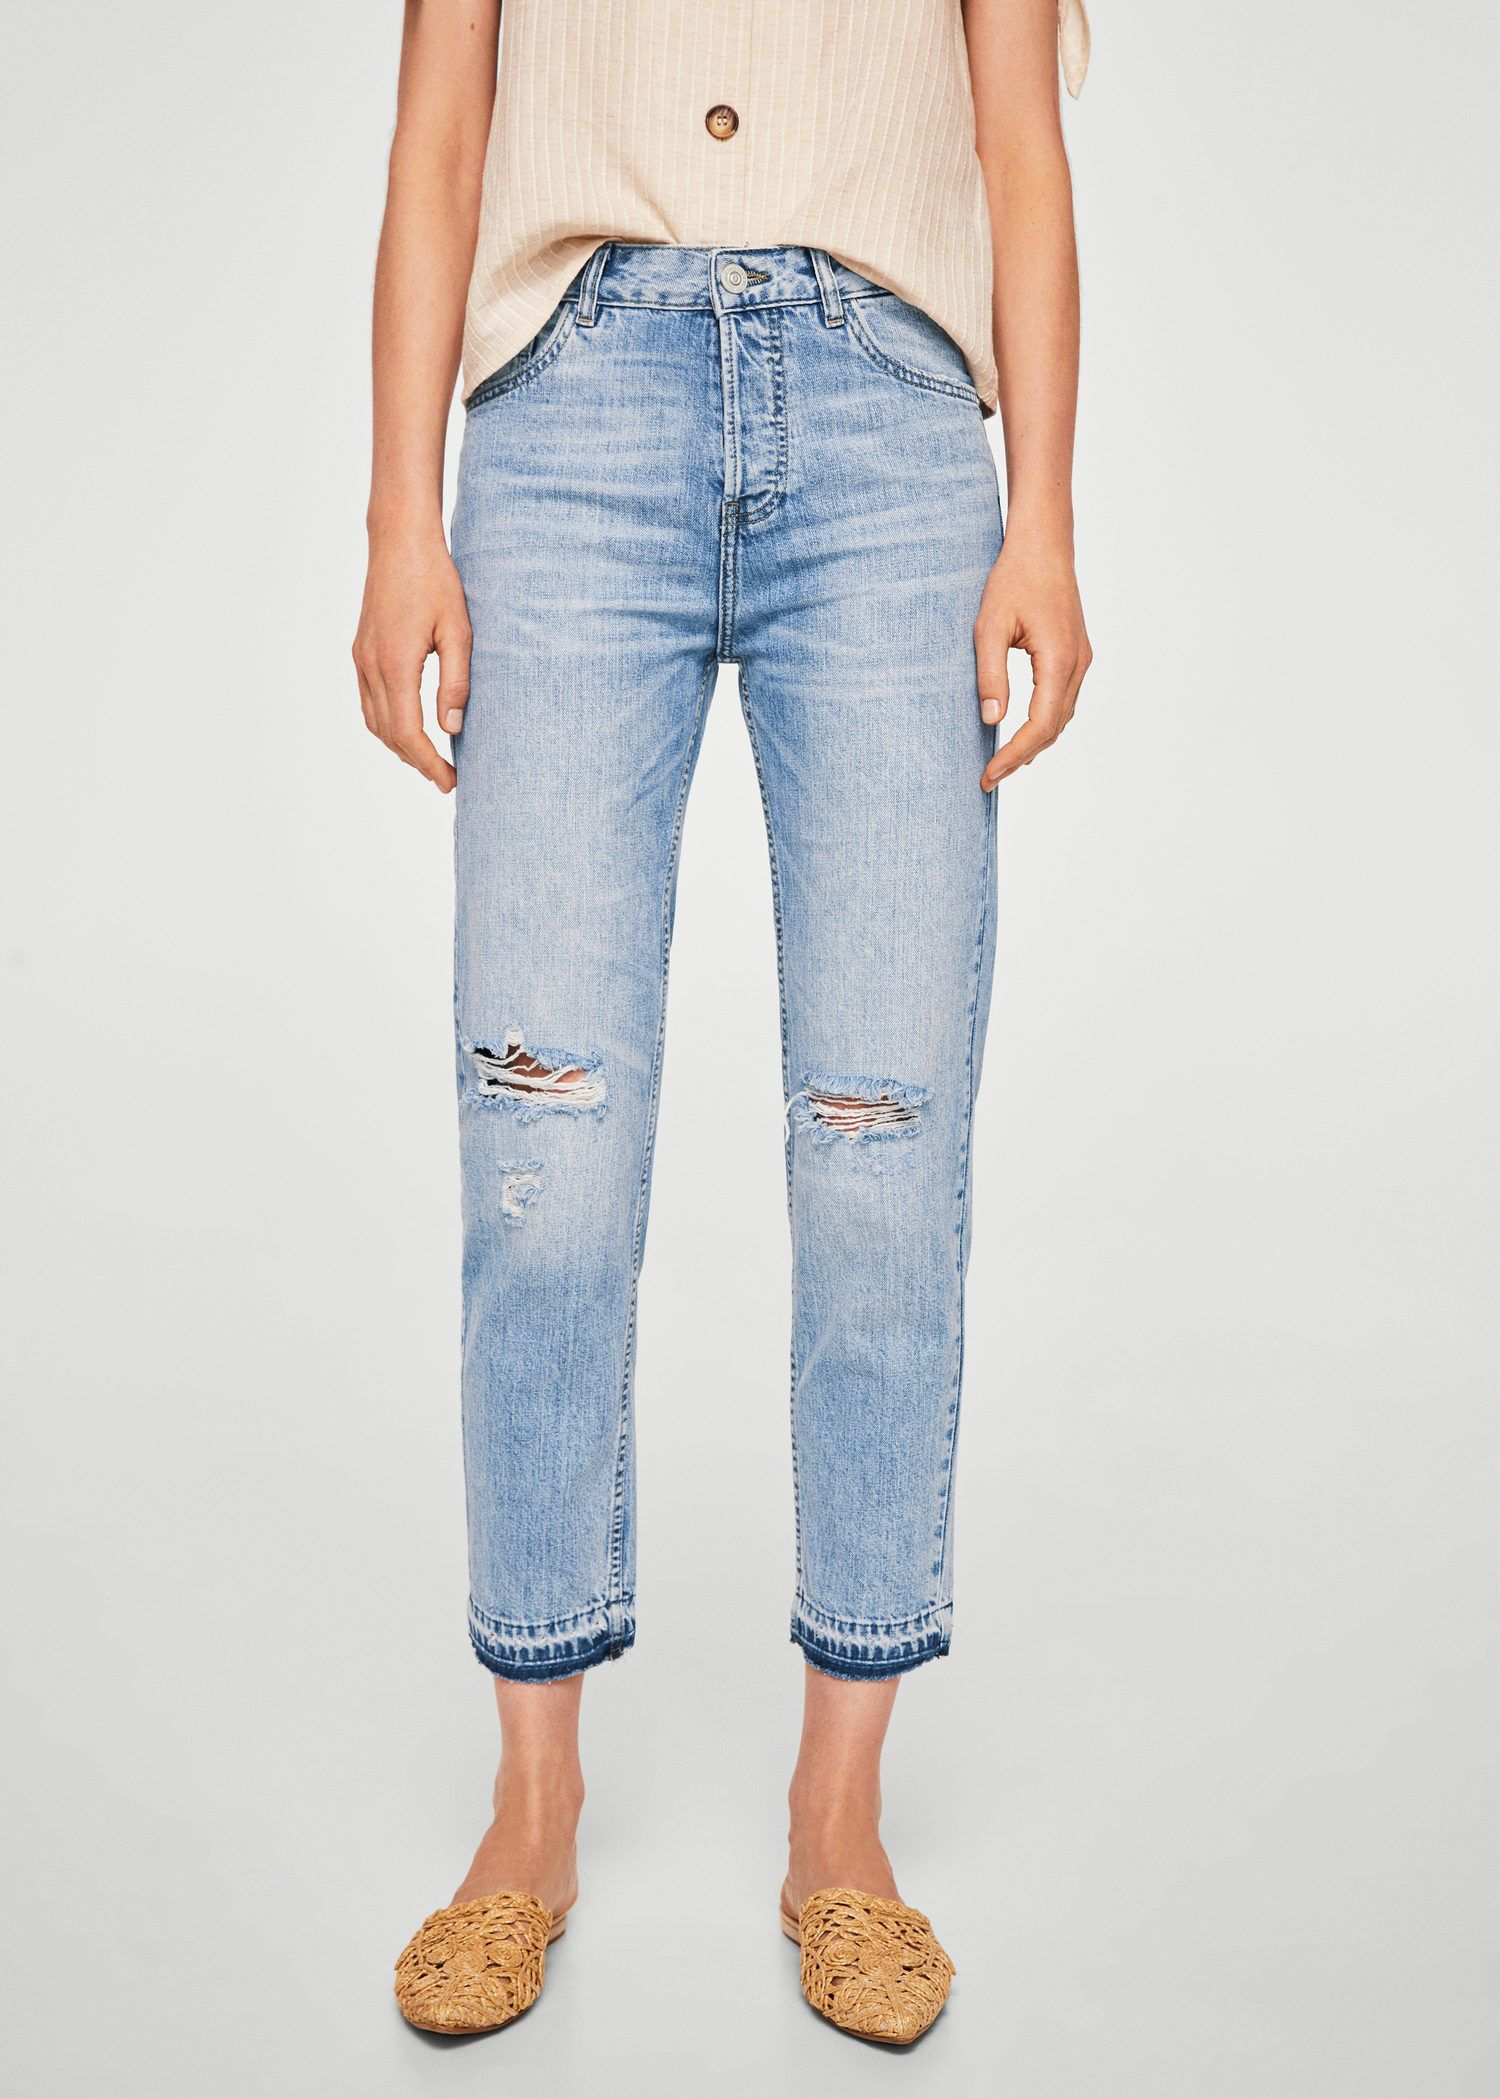 Relaxed Mom Farmer F Forelaxed Farmer Noi Outlet Magyarorszag Relaxed Jeans Blue Mom Jeans Women Jeans